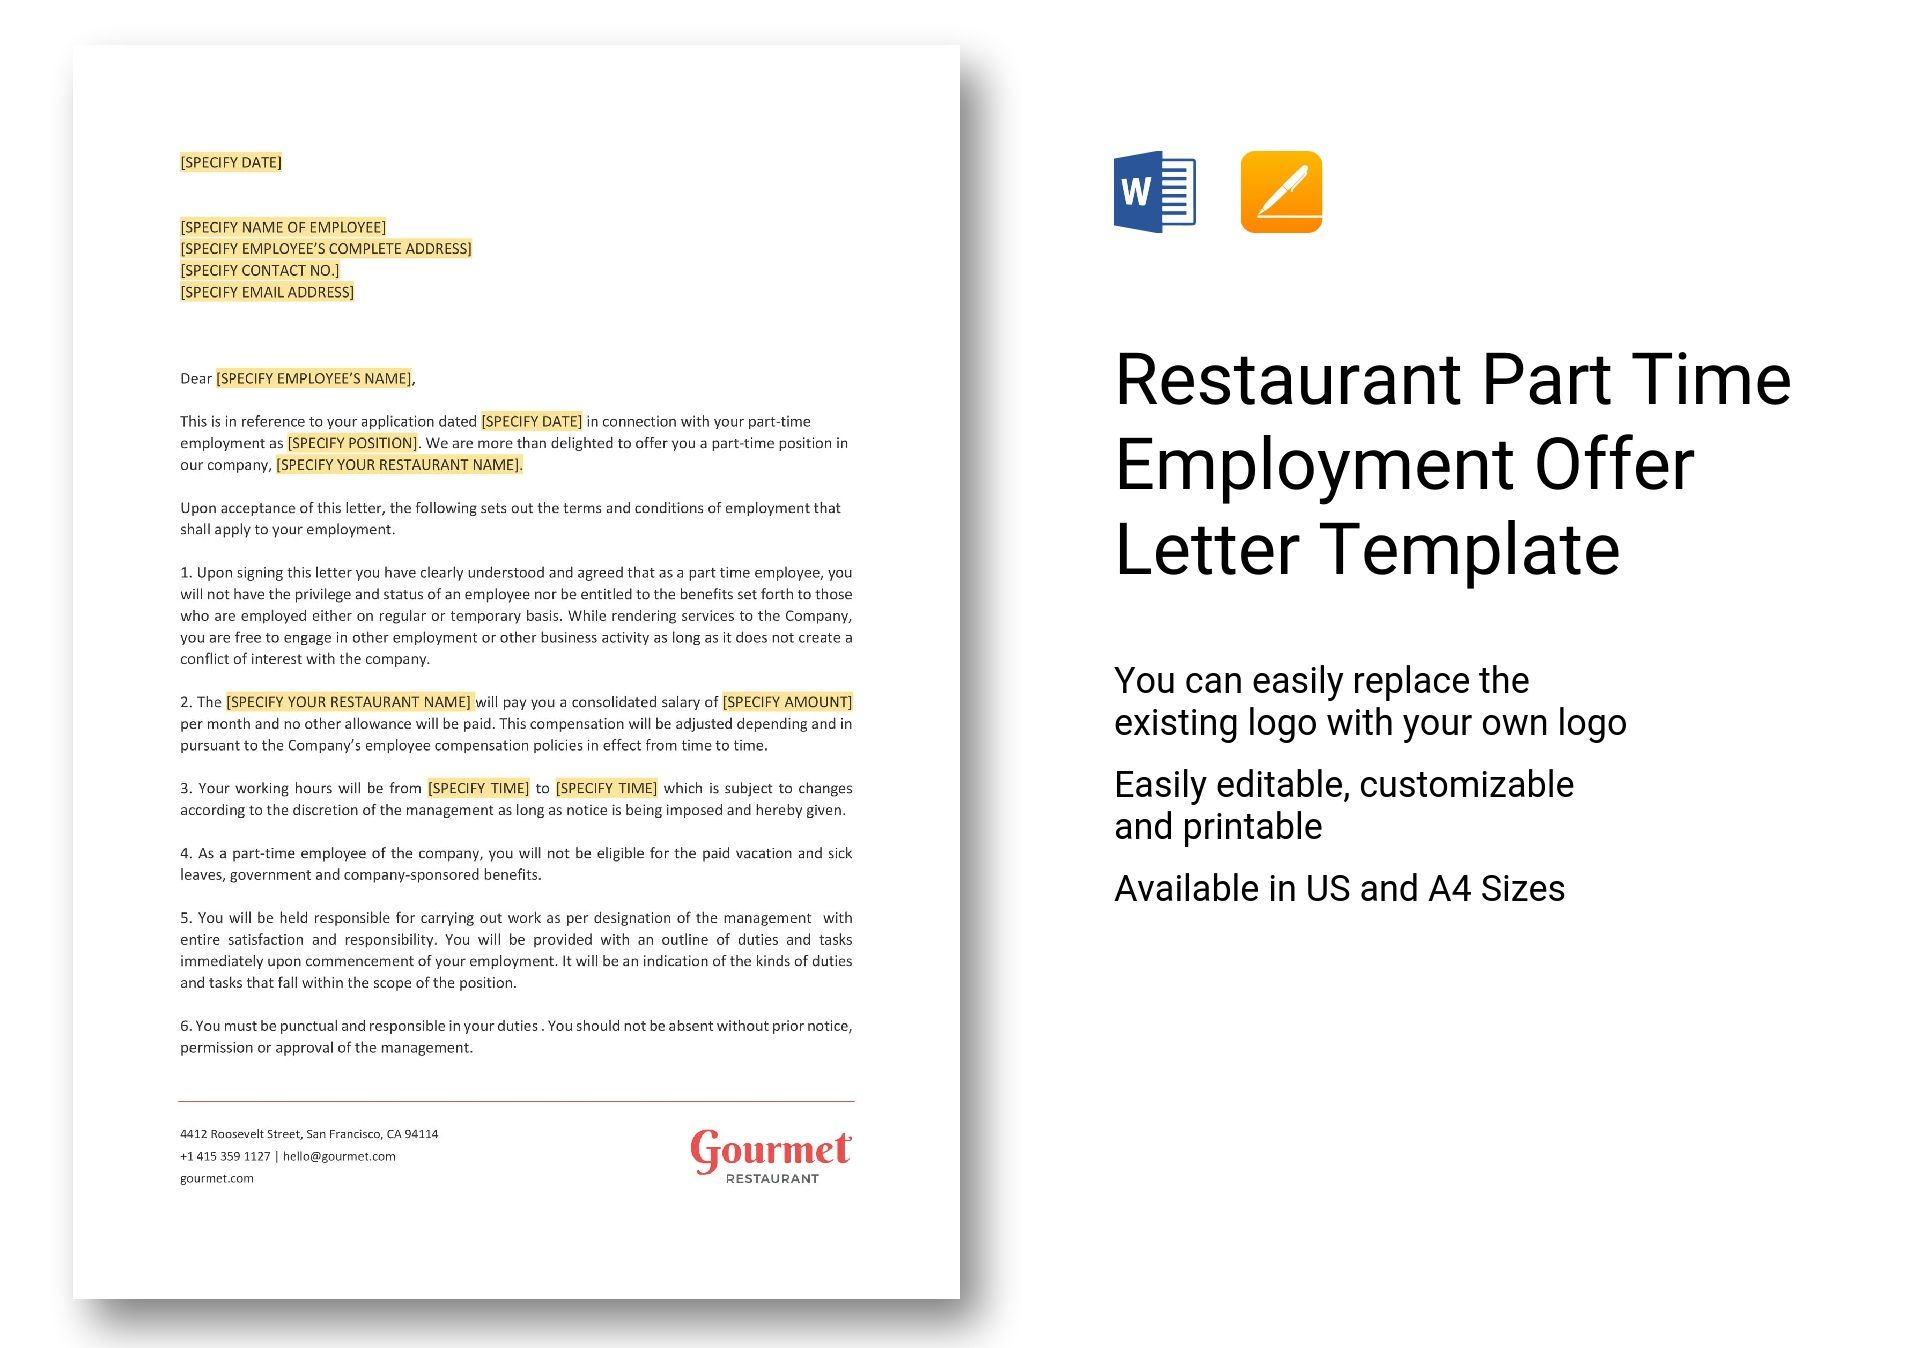 Image of employment offer letter template for free letter template word letter. Restaurant Part Time Employment Offer Letter Template In Word Apple Pages